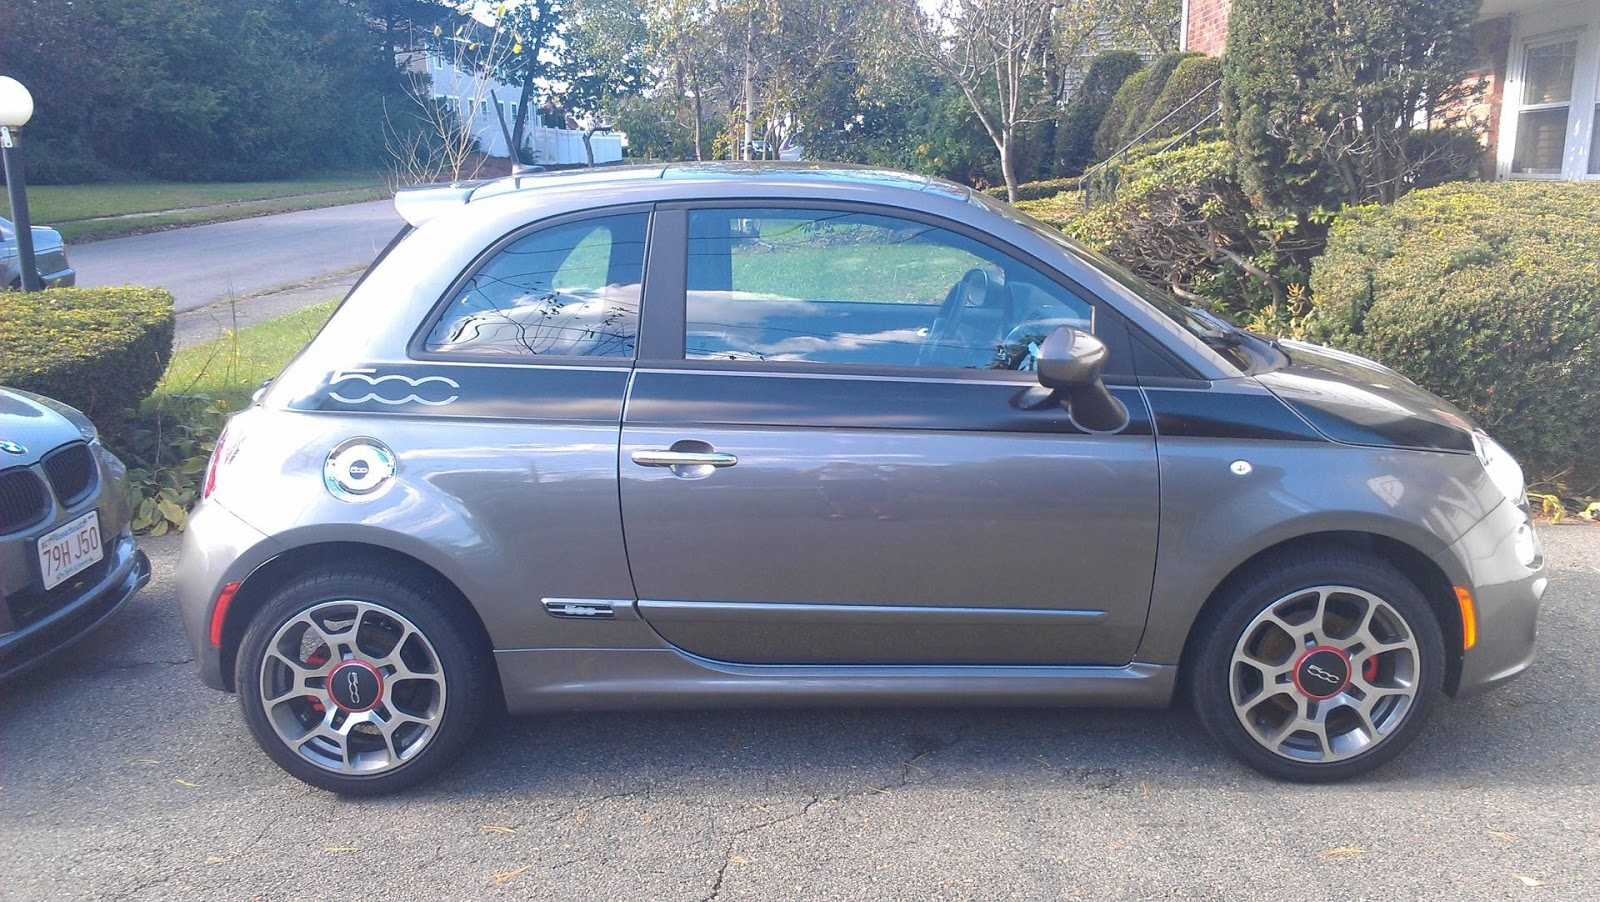 2014 fiat 500t sport photos 2017 cars news. Black Bedroom Furniture Sets. Home Design Ideas